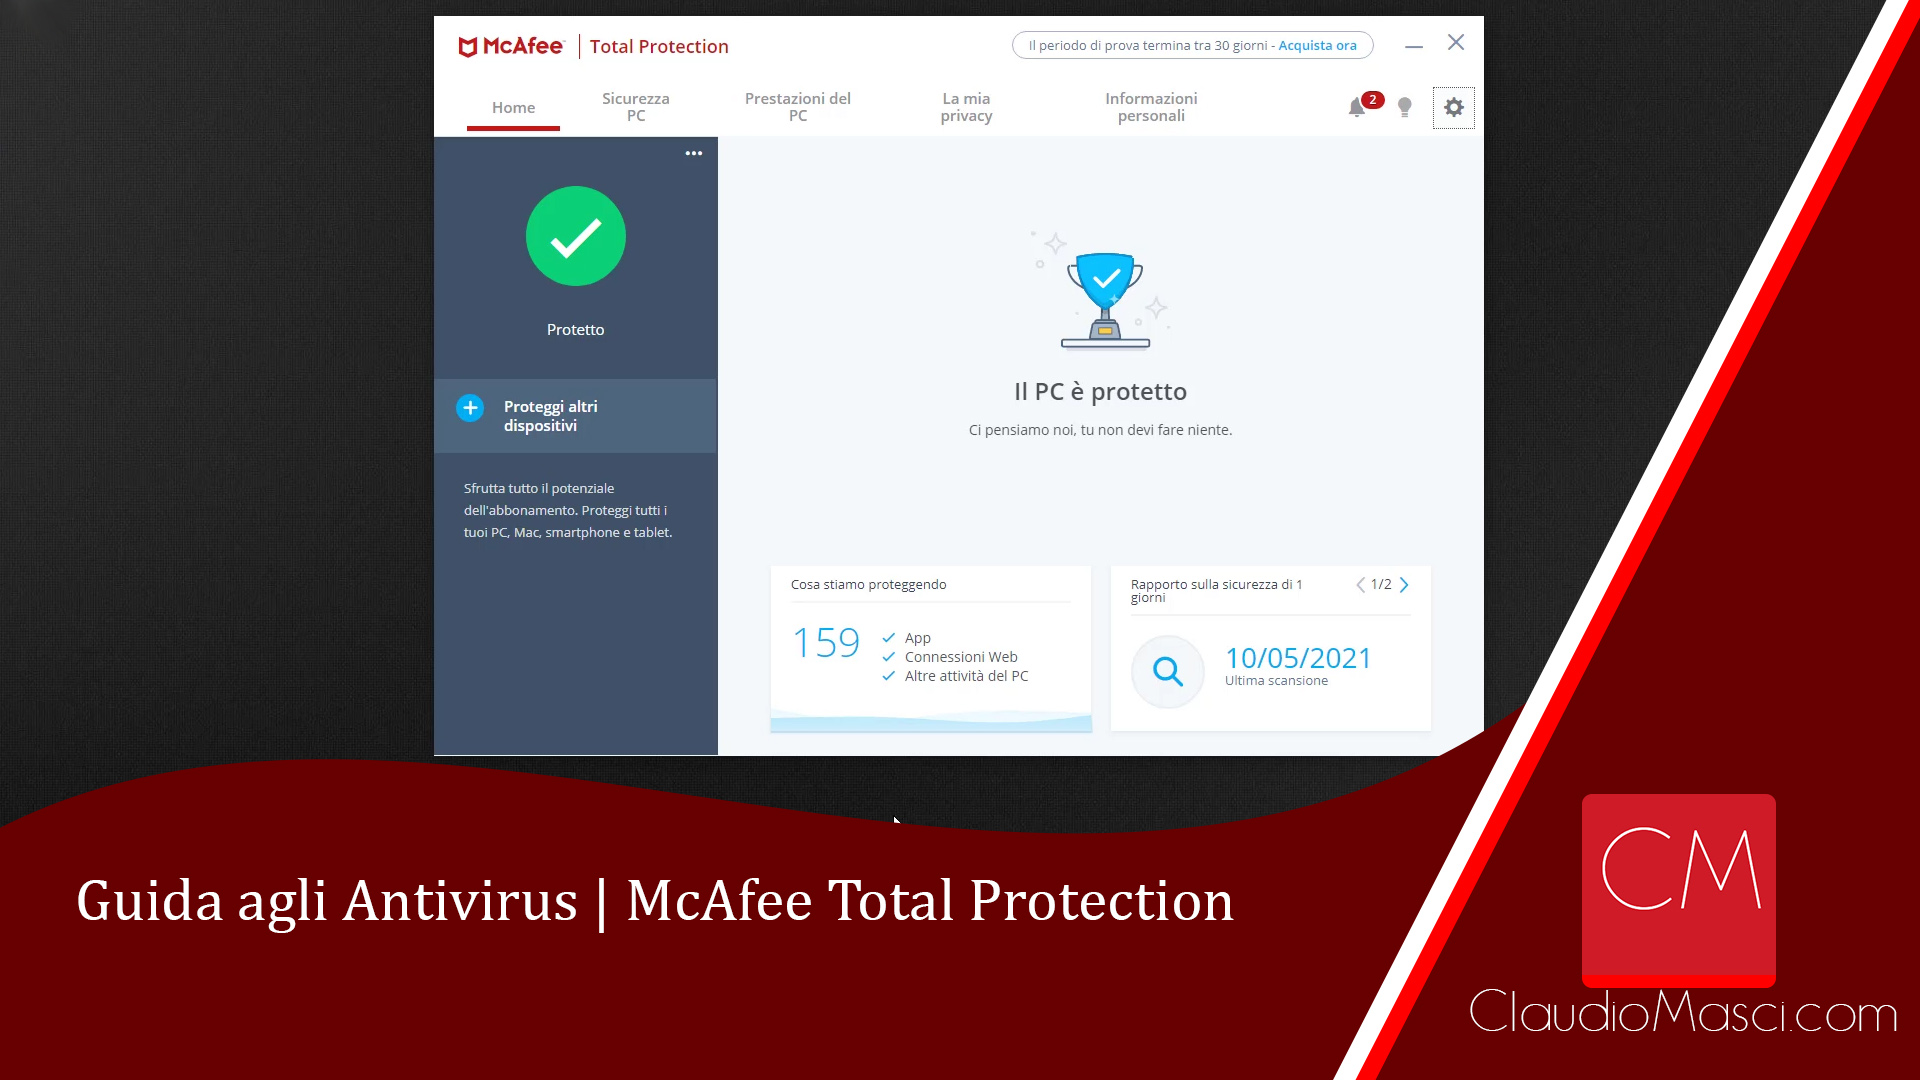 Guida agli Antivirus - McAfee Total Protection